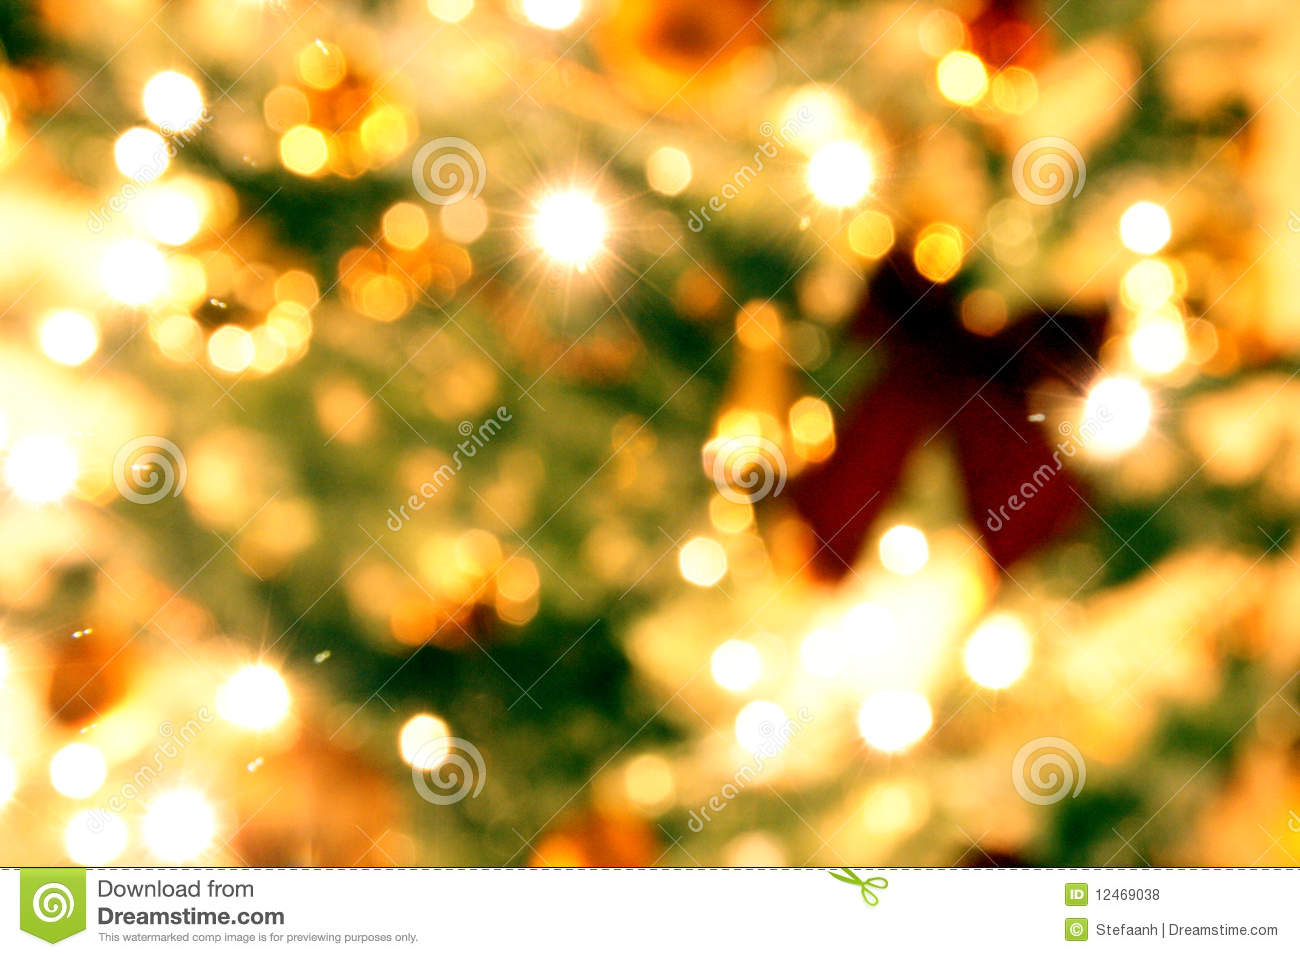 Blurry Christmas Tree Background Royalty Free Stock Photos - Image ...